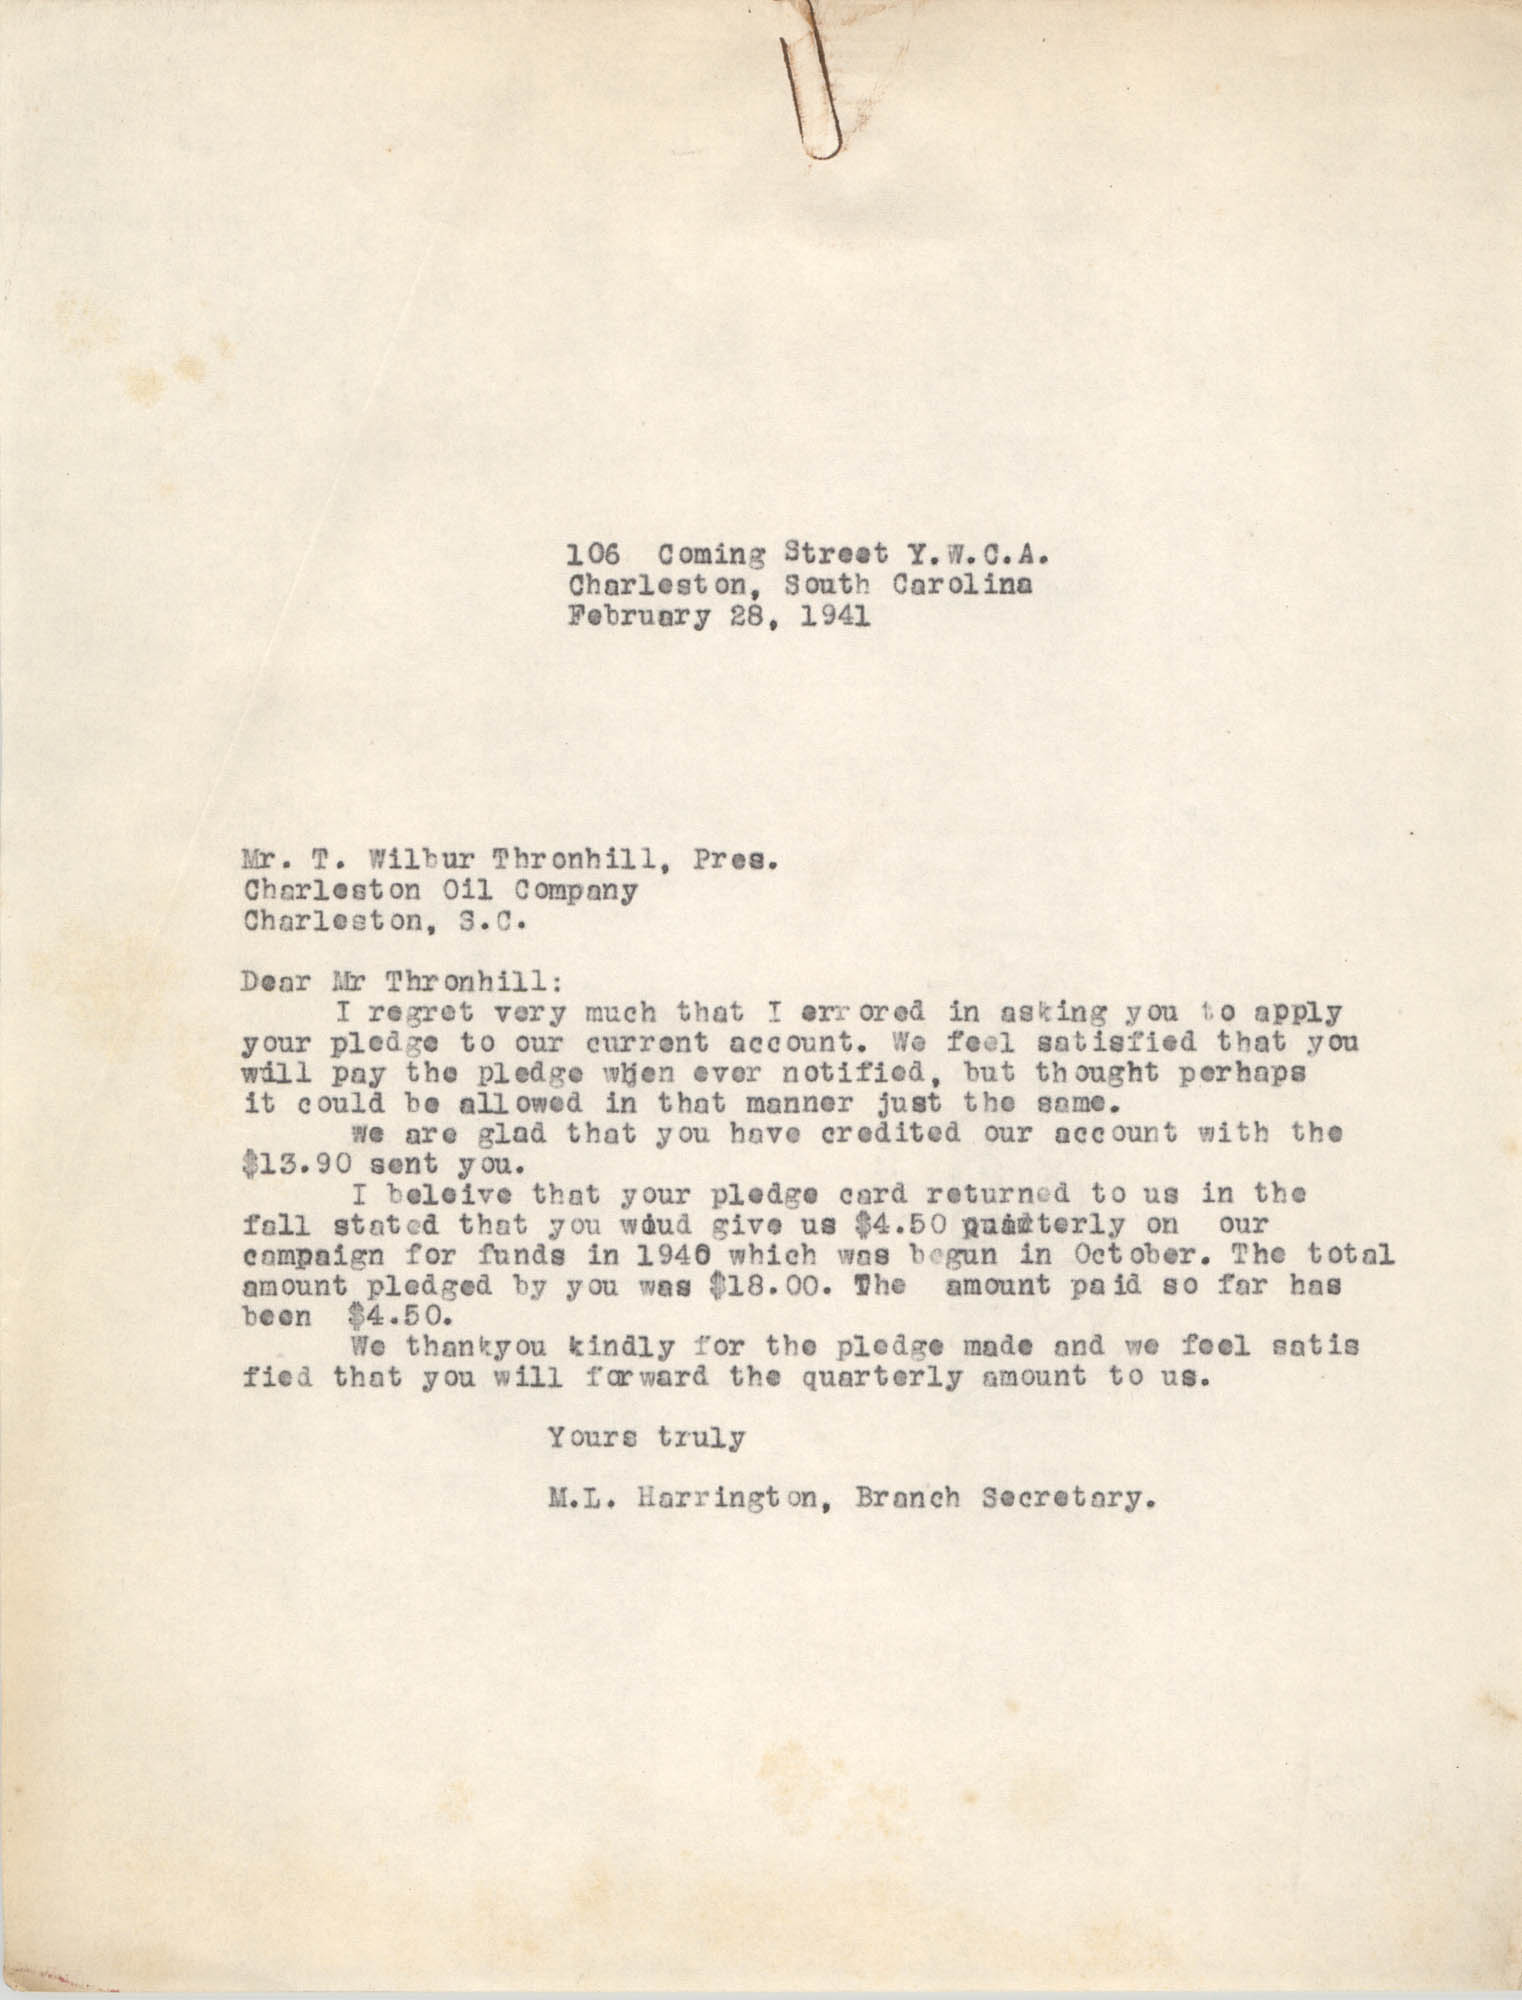 Letter from M. L. Harrington to T. Wilbur Thornhill, February 28, 1941